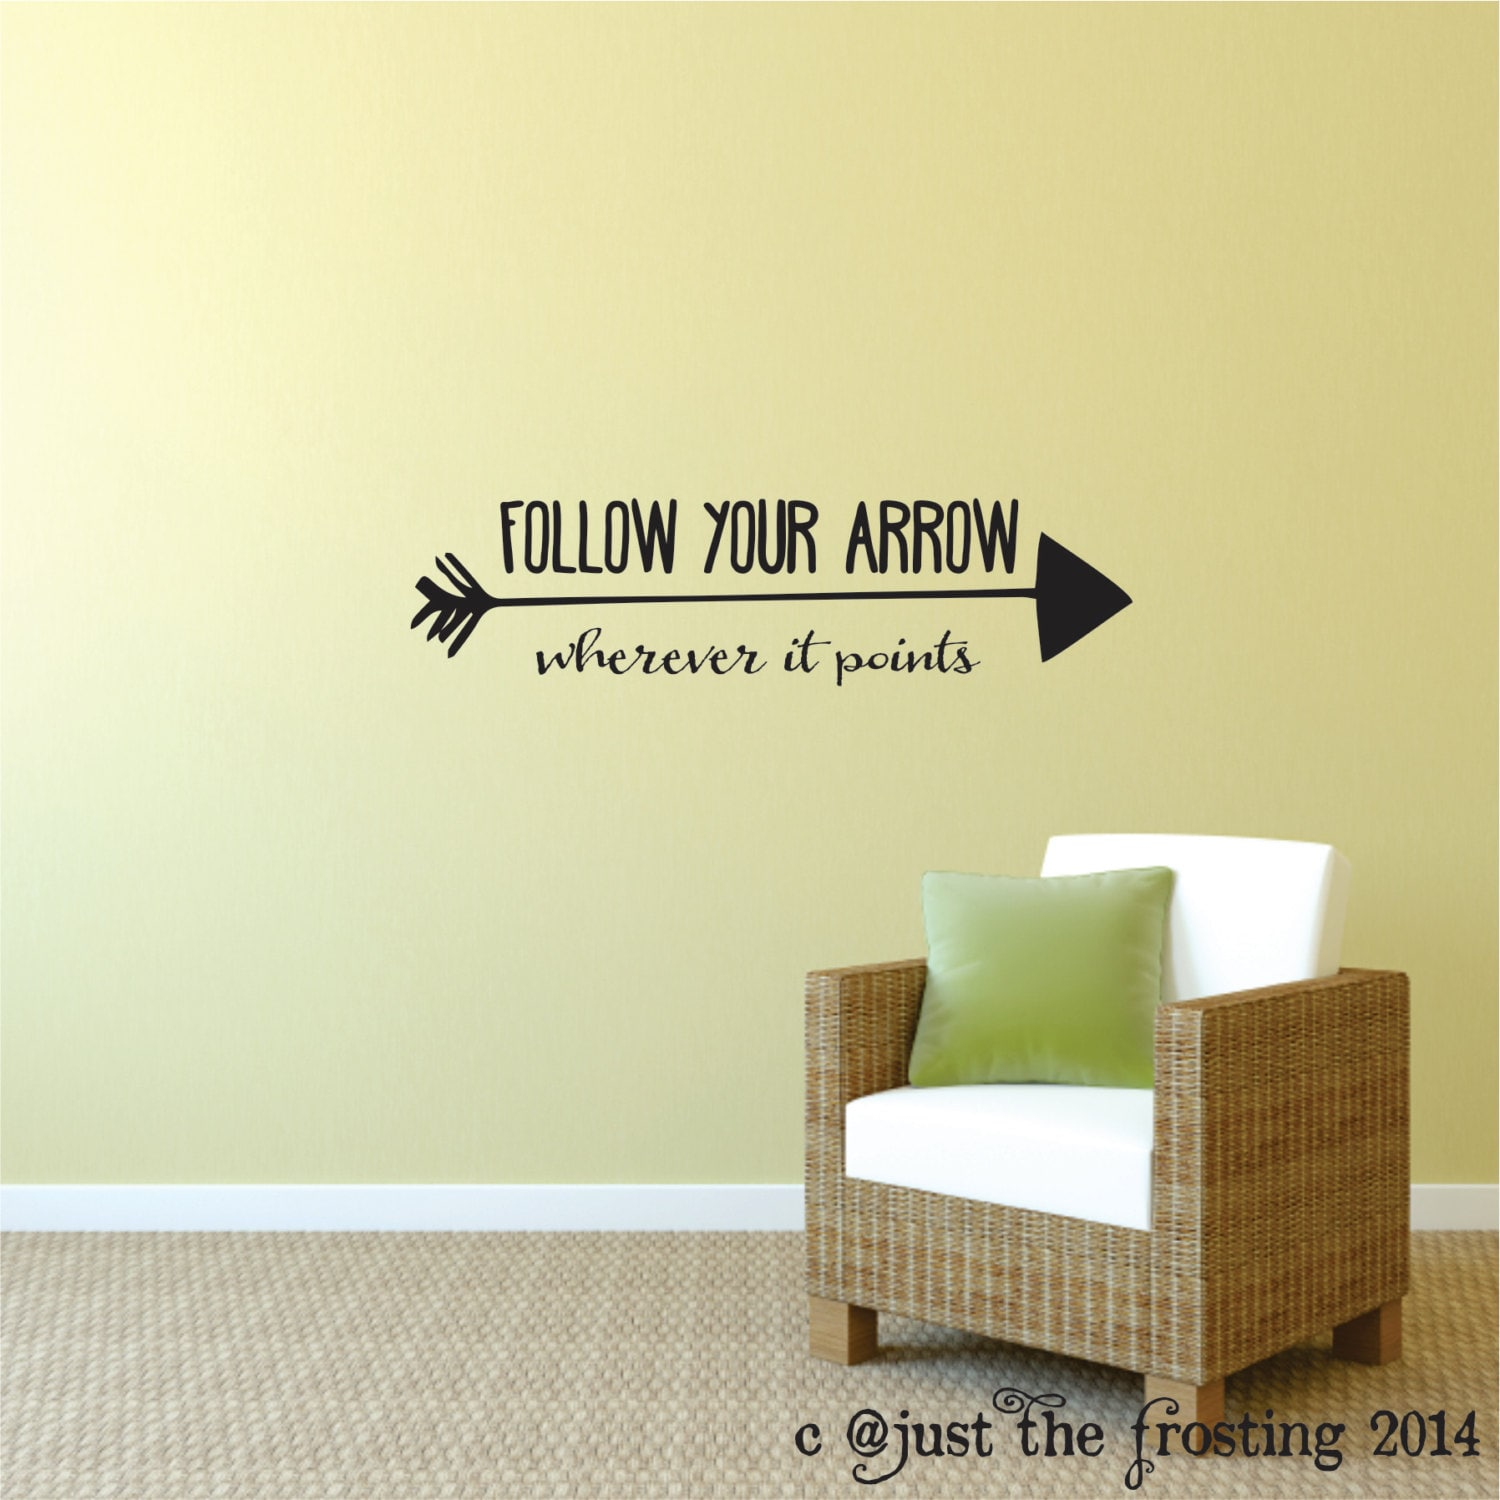 Awesome Christian Wall Decor Quotes Pattern - The Wall Art ...